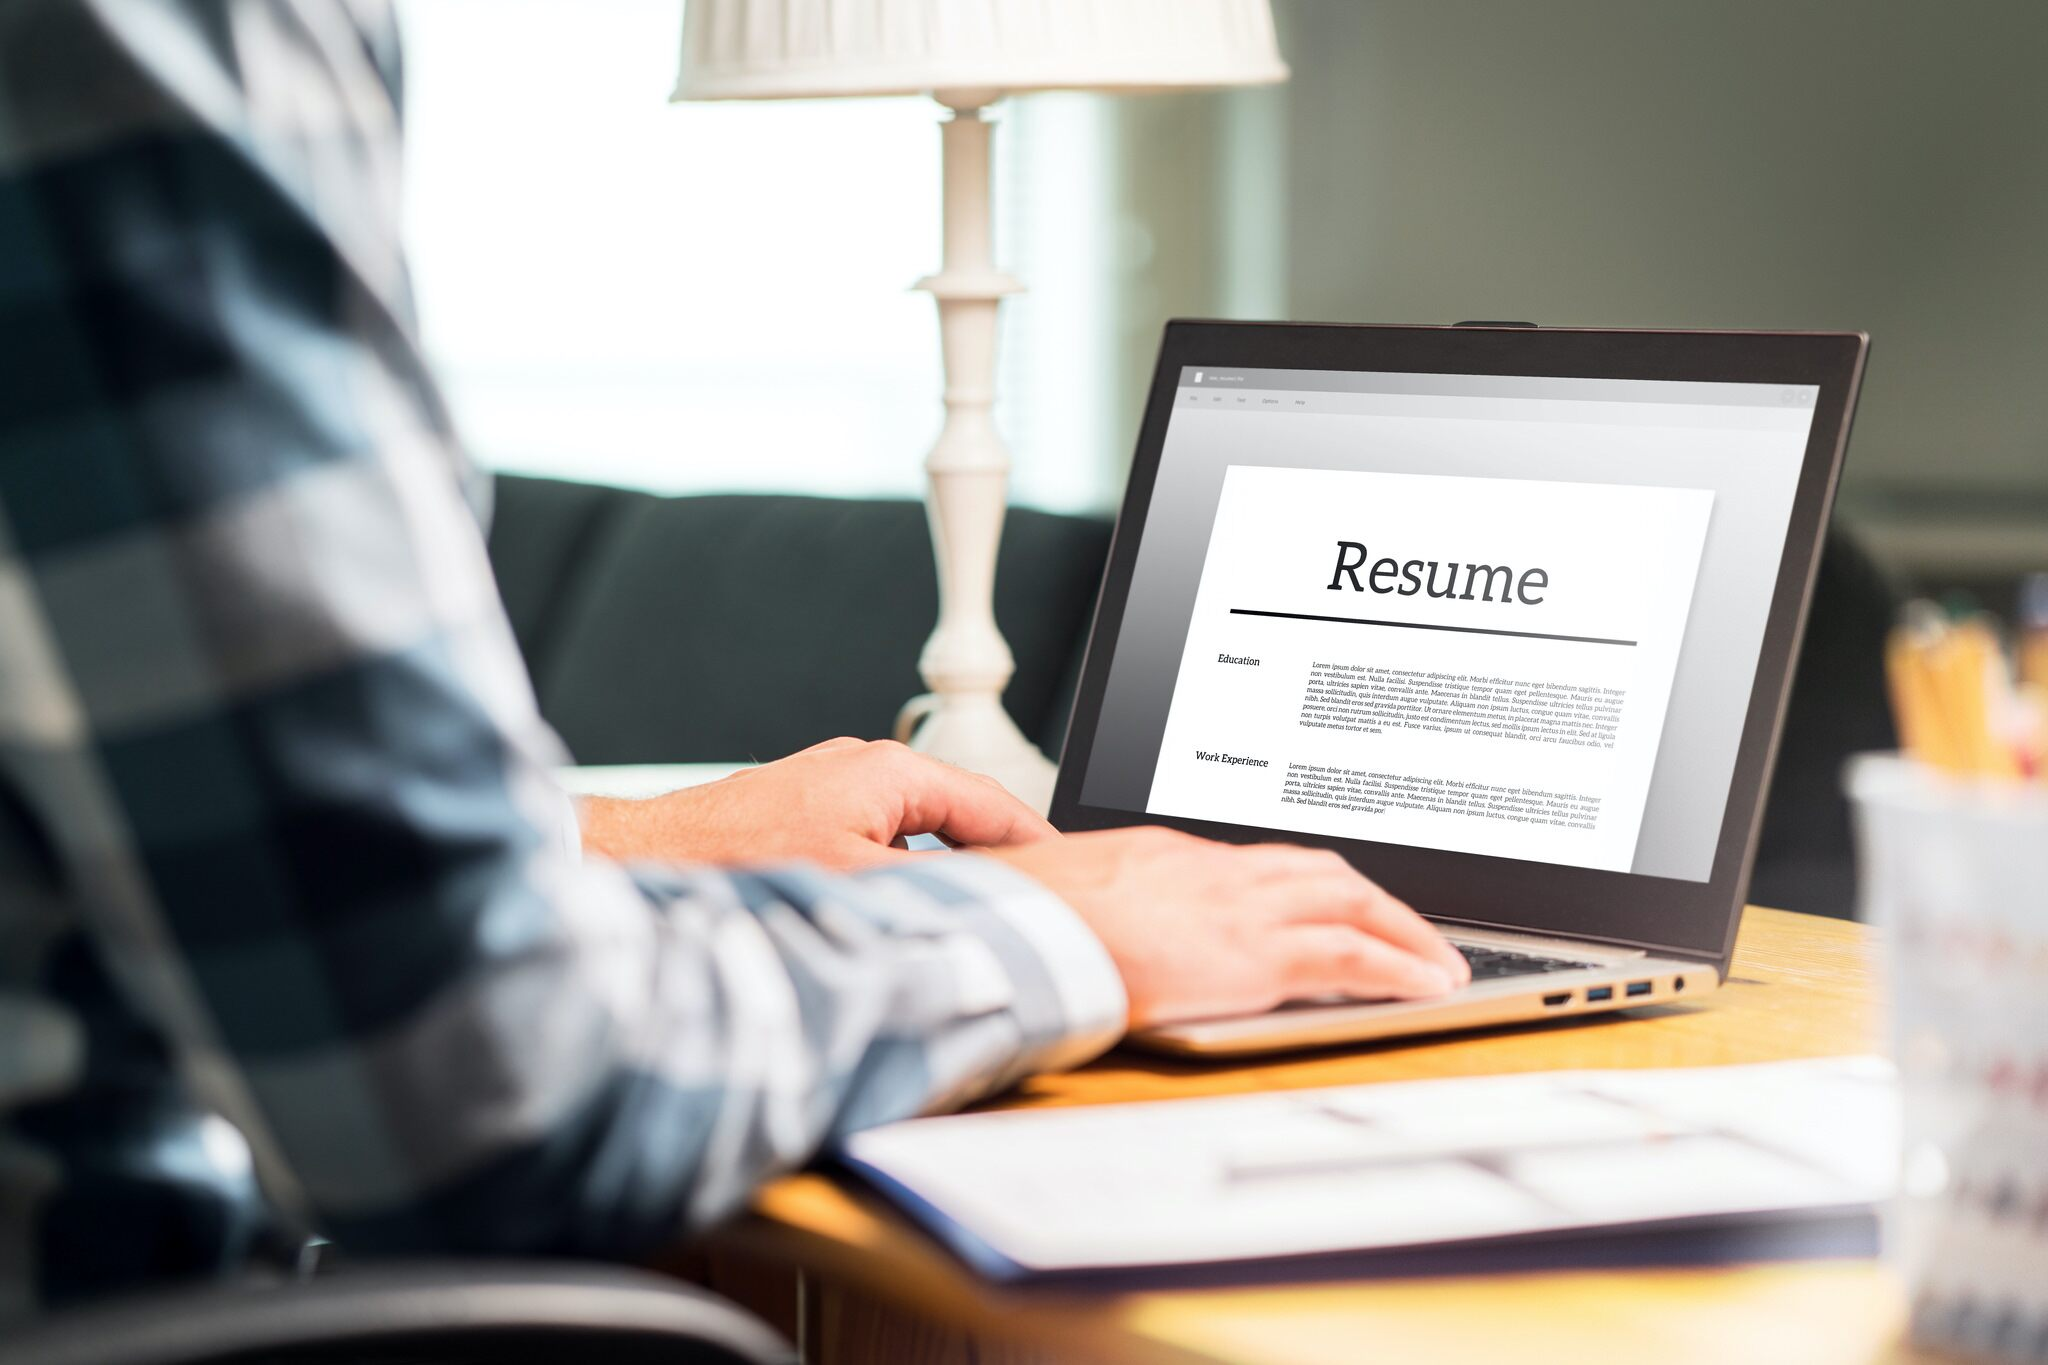 prepare your resume for email and posting my perfect creating scannable preparing Resume Creating A Scannable Resume